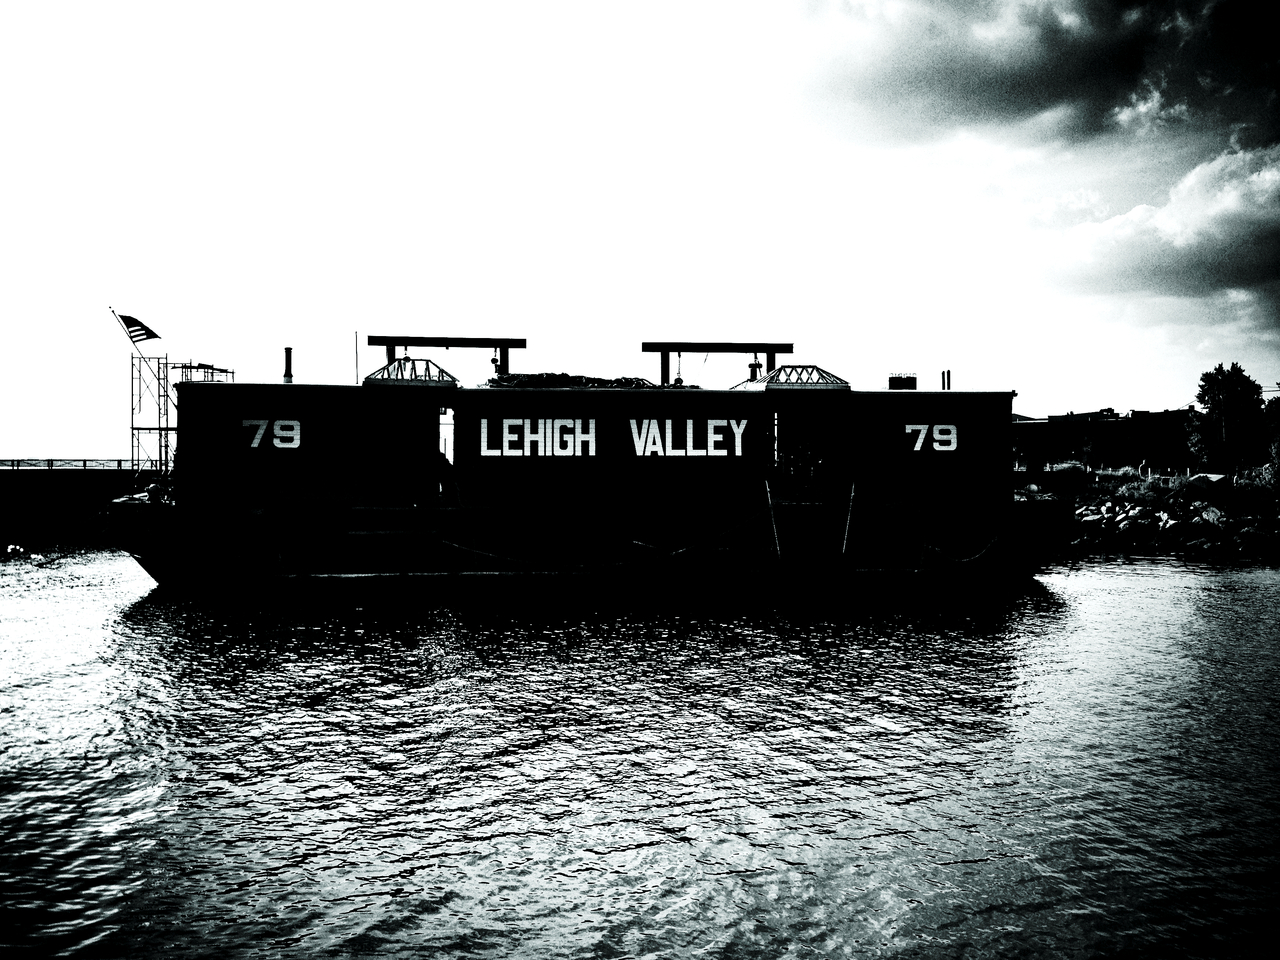 Valley On The Bay #peppersearching #pepper #photos #type #blackwhite #boat #bay #brooklyn #nyc